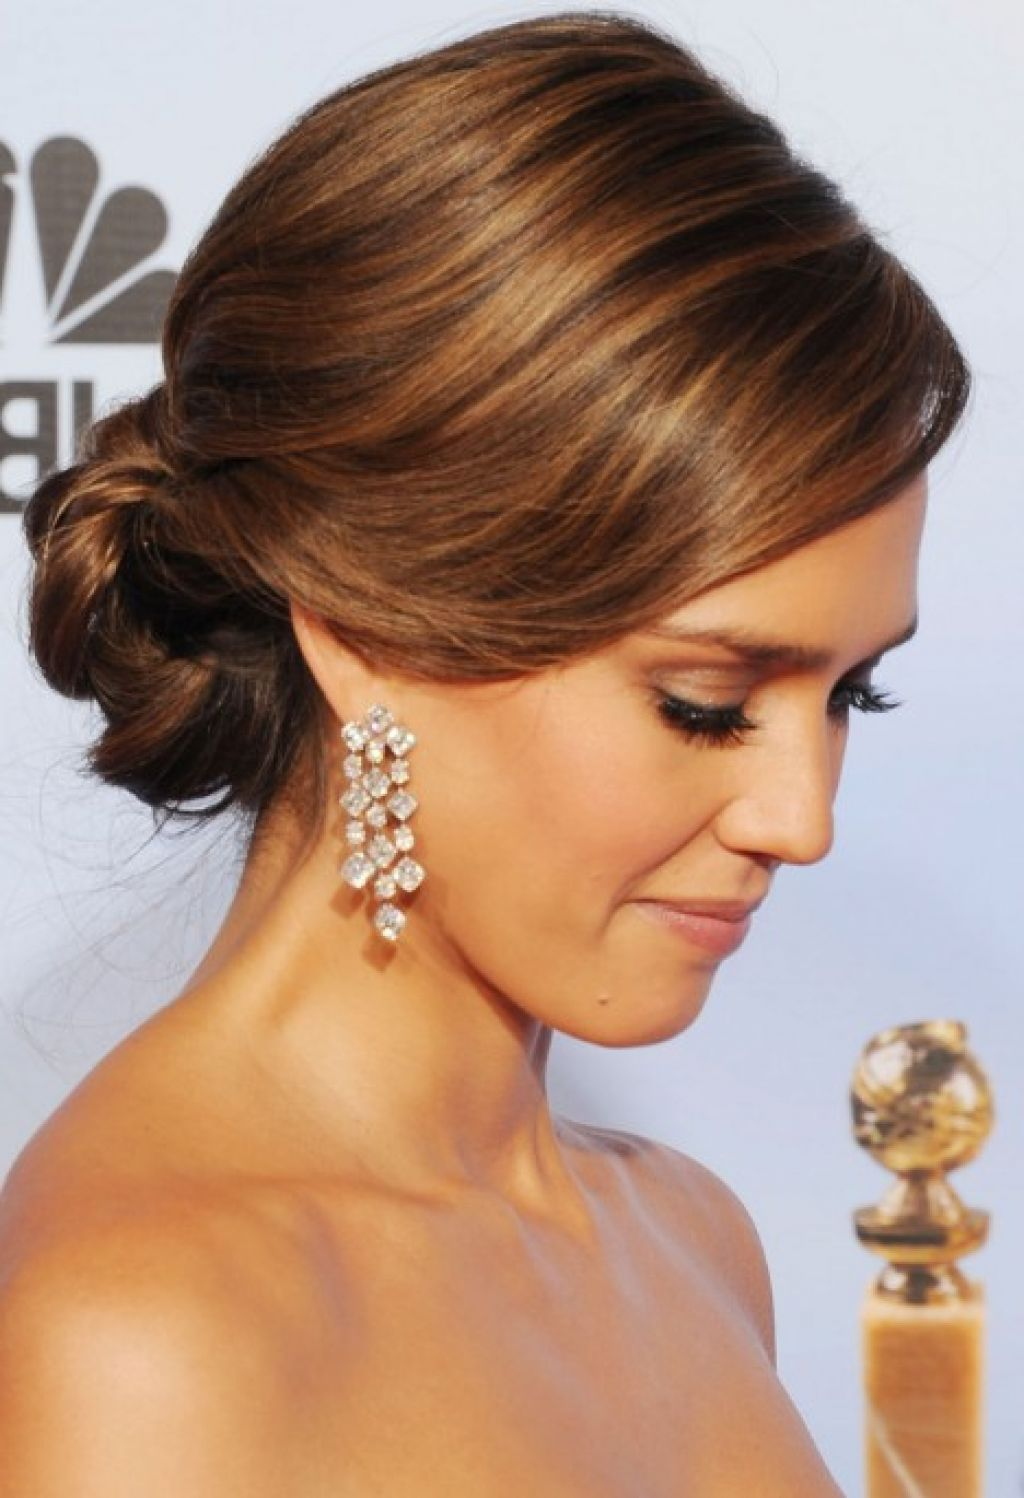 wedding hairstyles ideas side ponytail formal straight low